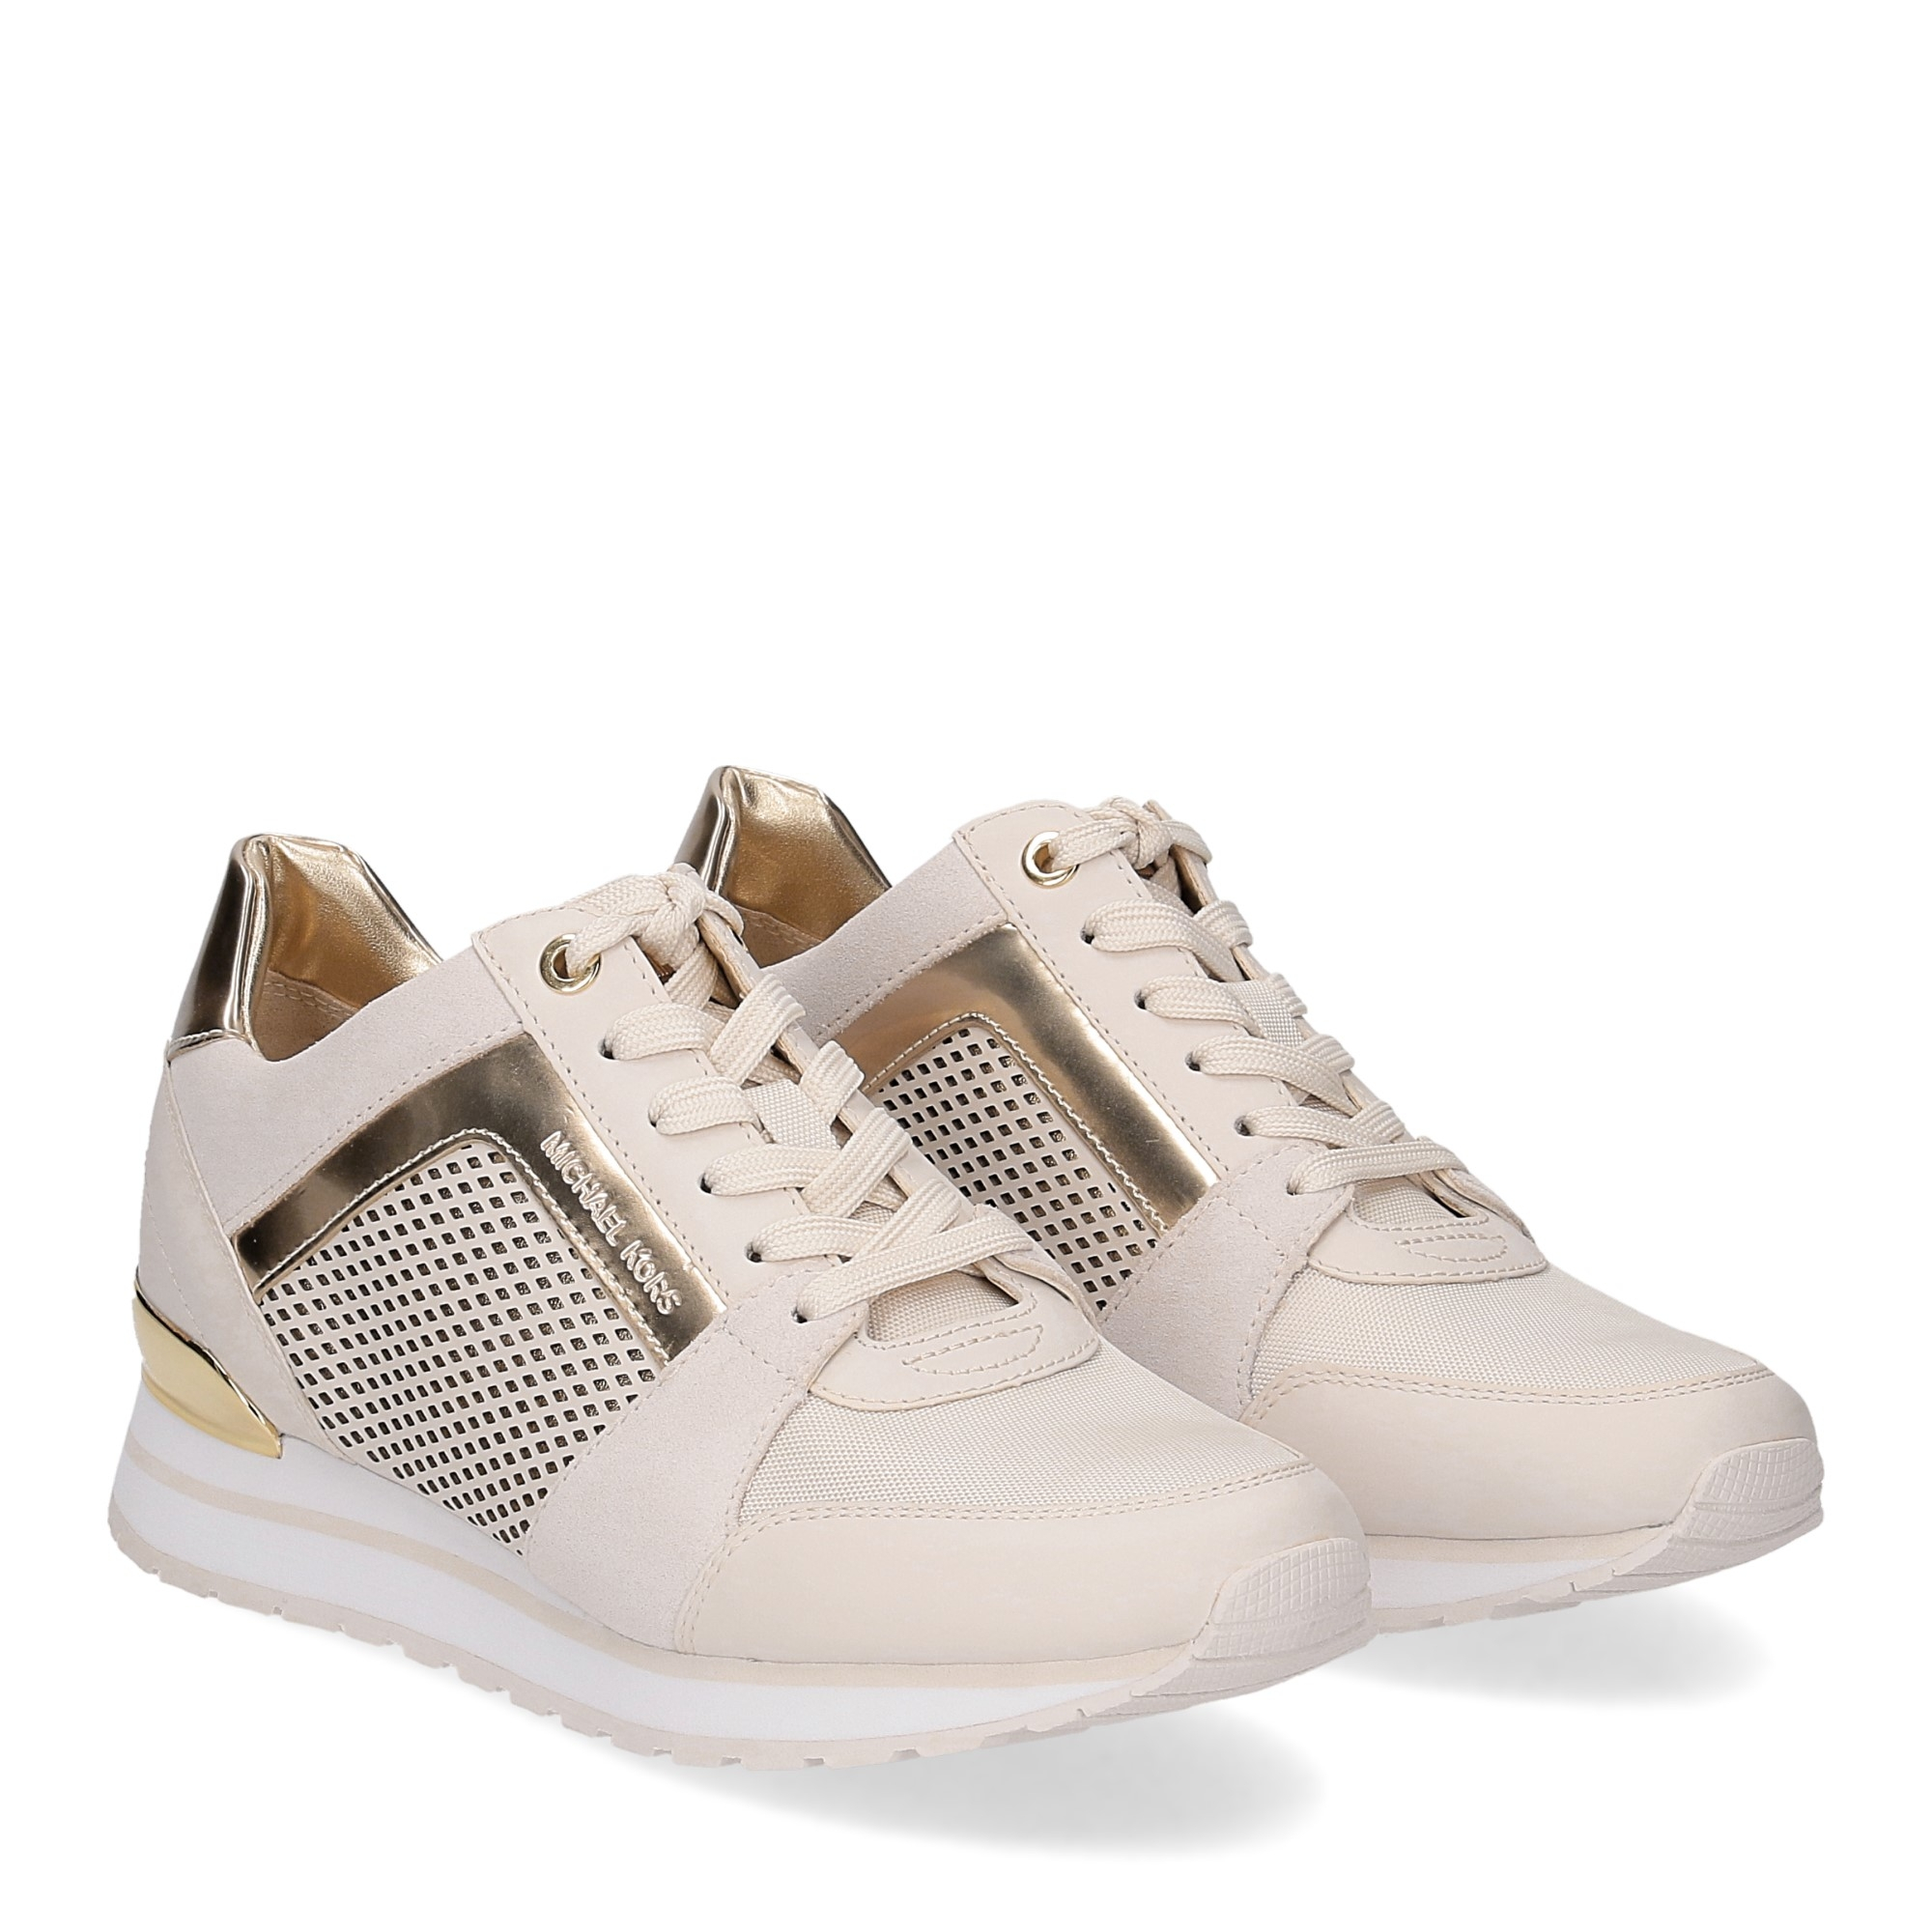 Michael KorsBillie Trainer Cream